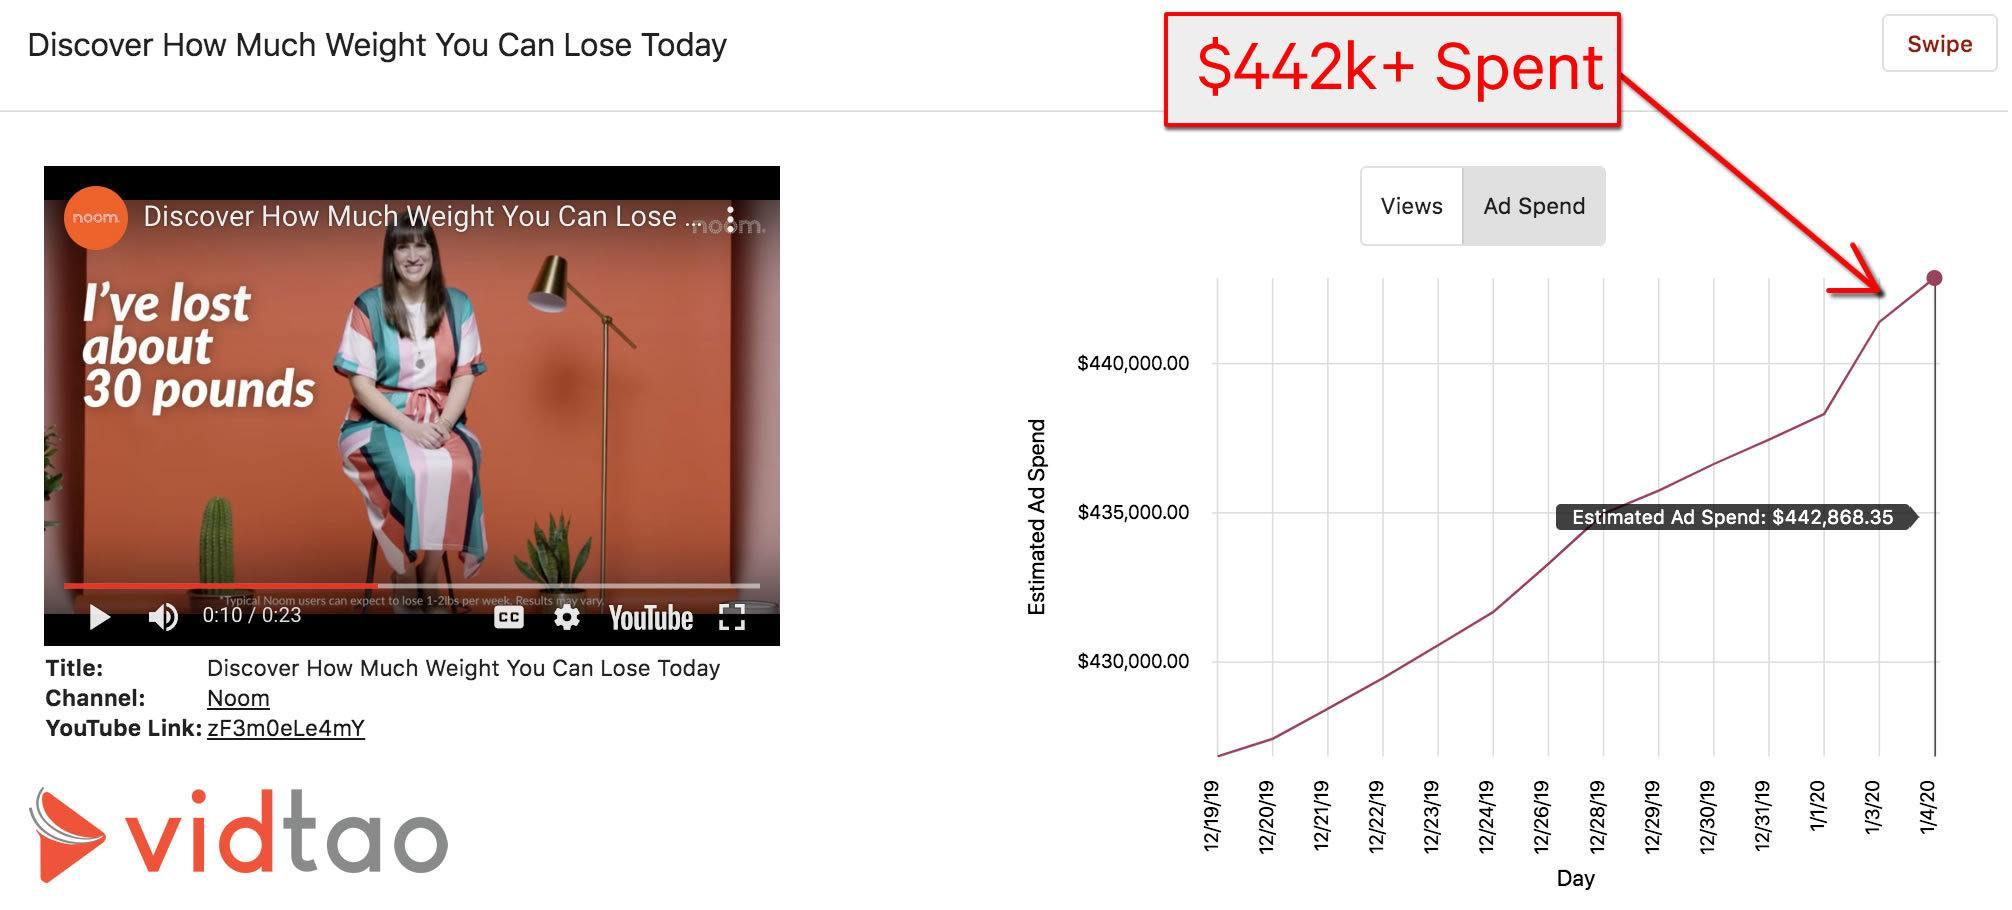 youtube-ad-spy-tool-screenshot-noom-weight-loss-screenshot-20200101-1